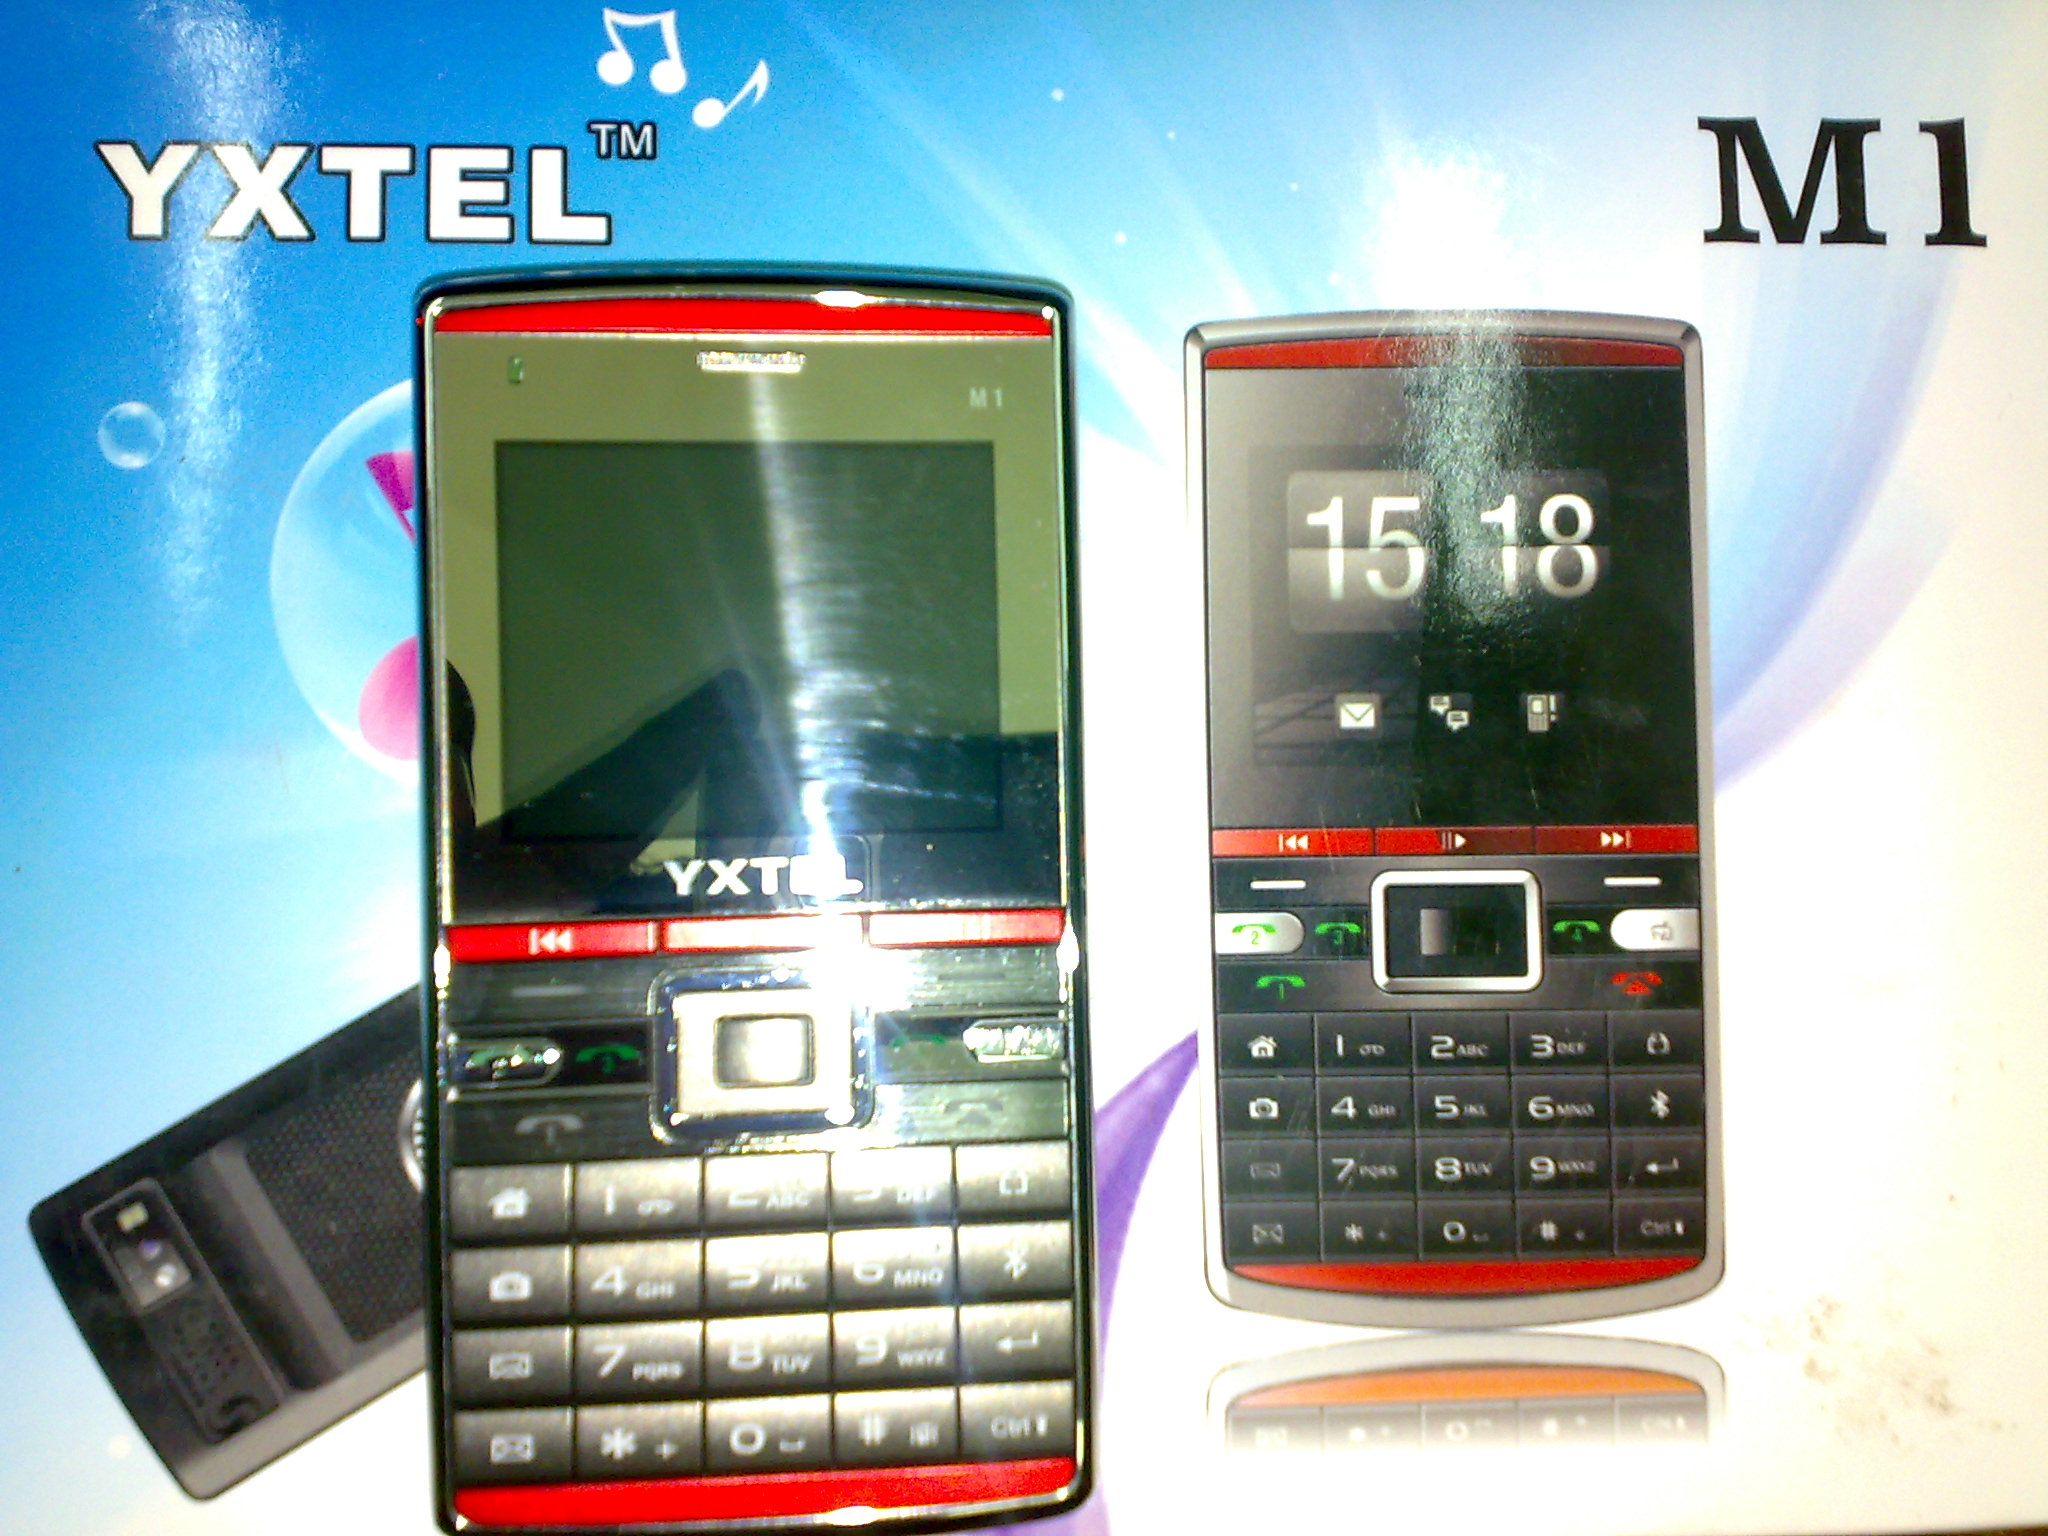 Flash mobile_m1_YXTEL_4 SIM_16M